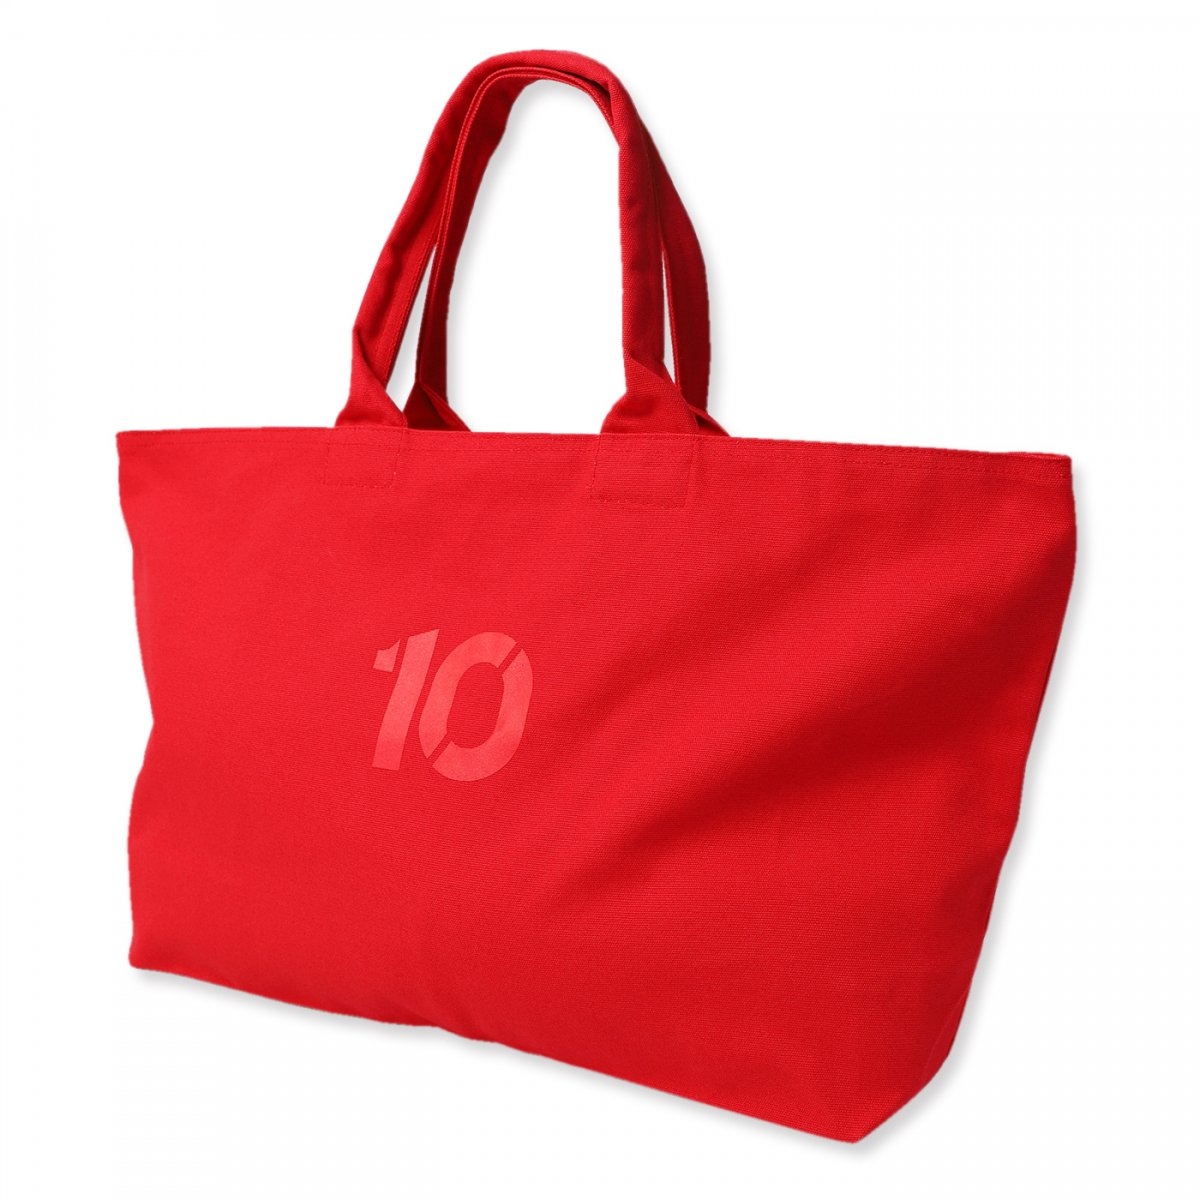 BB10 tote bag【red】